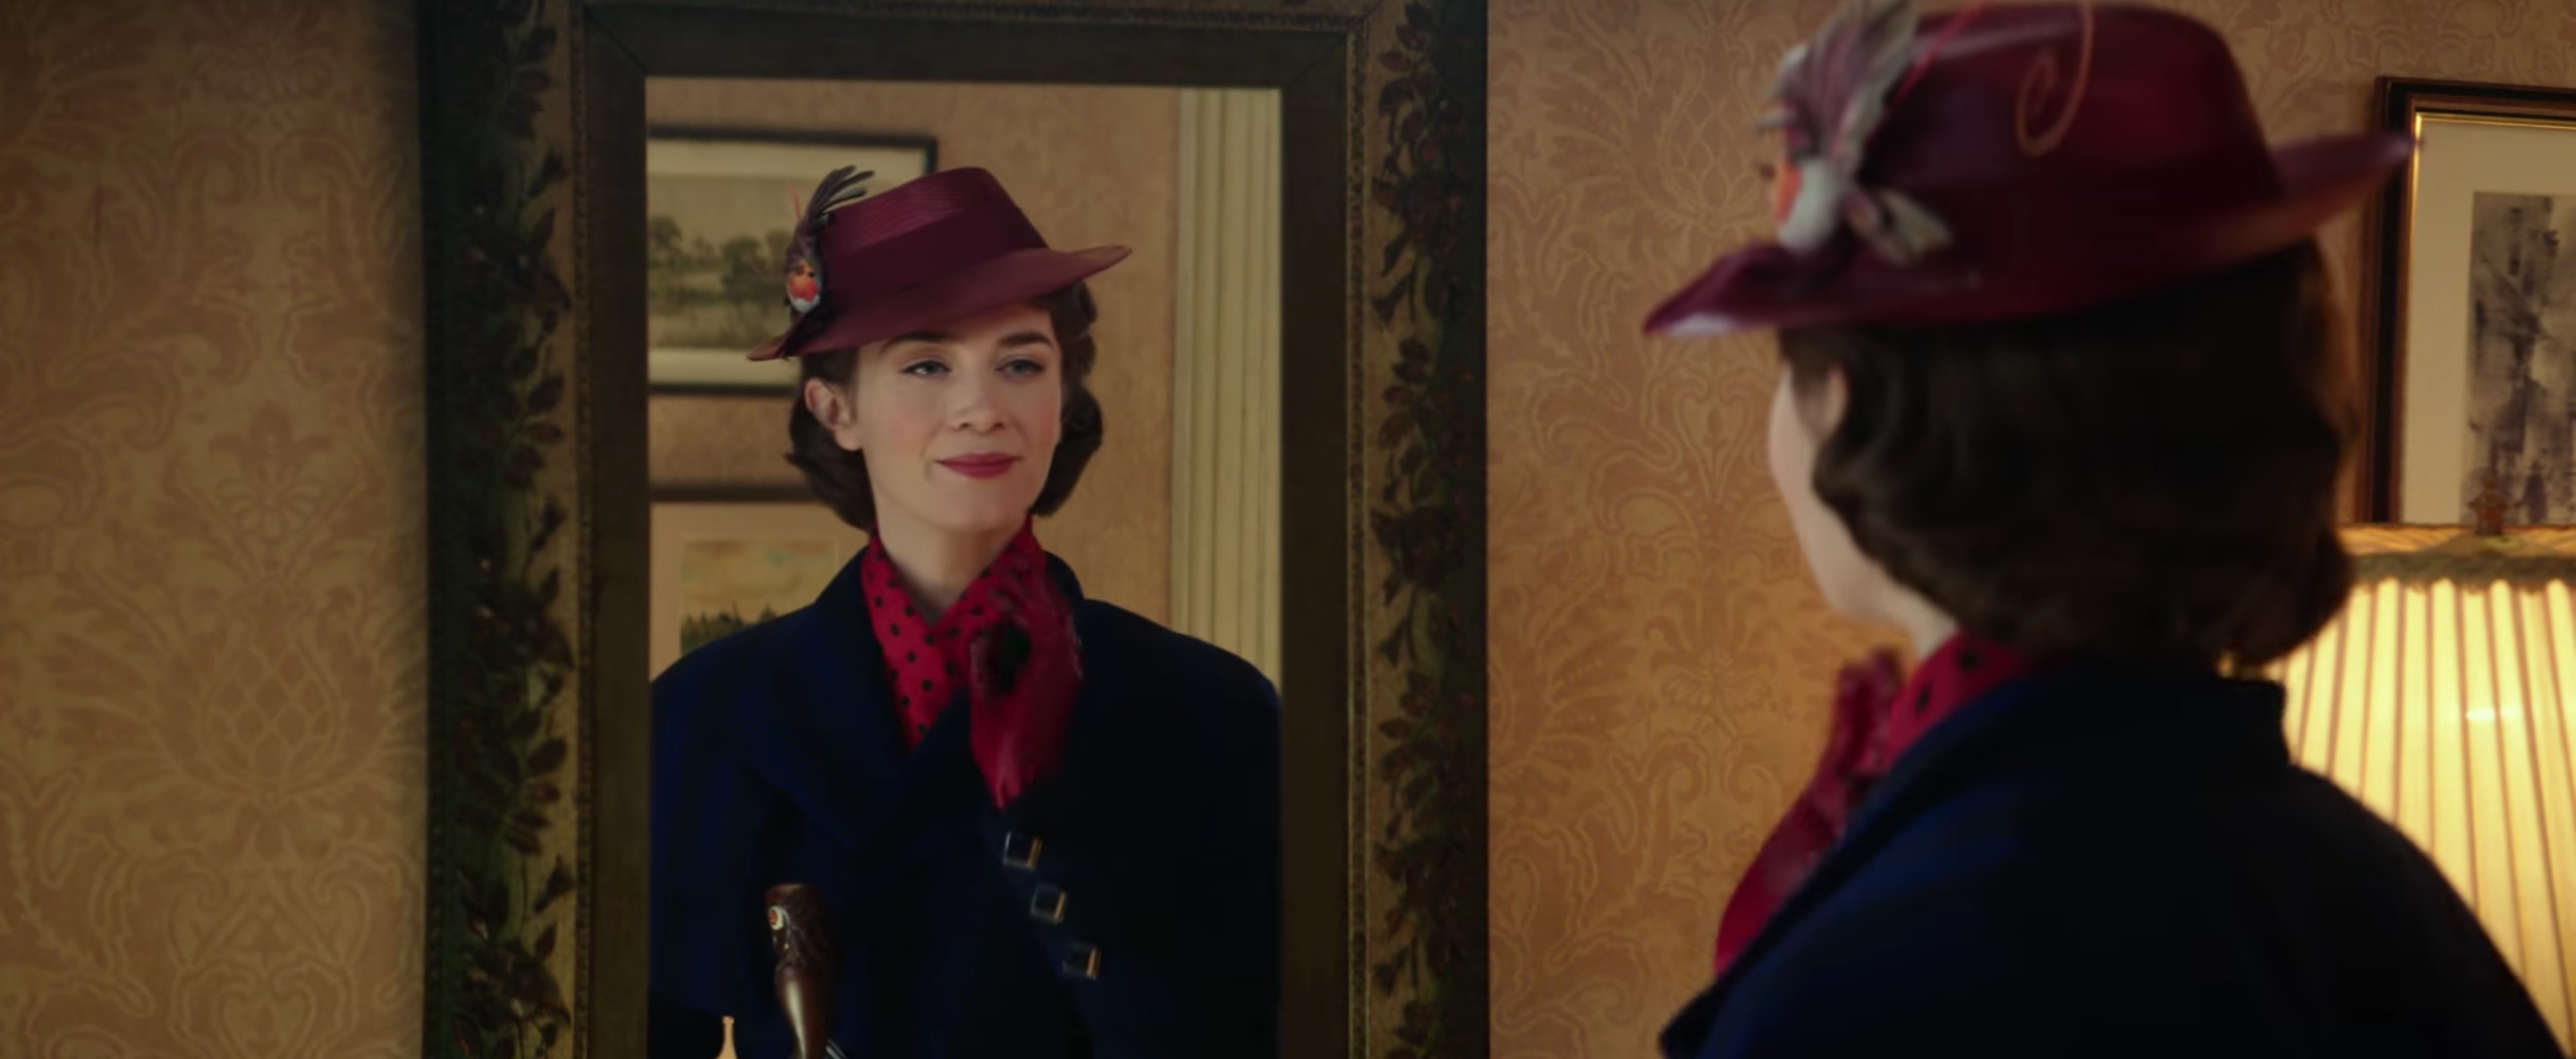 EMILY BLUNT'LI MARY POPPINS'TEN İLK FRAGMAN GELDİ